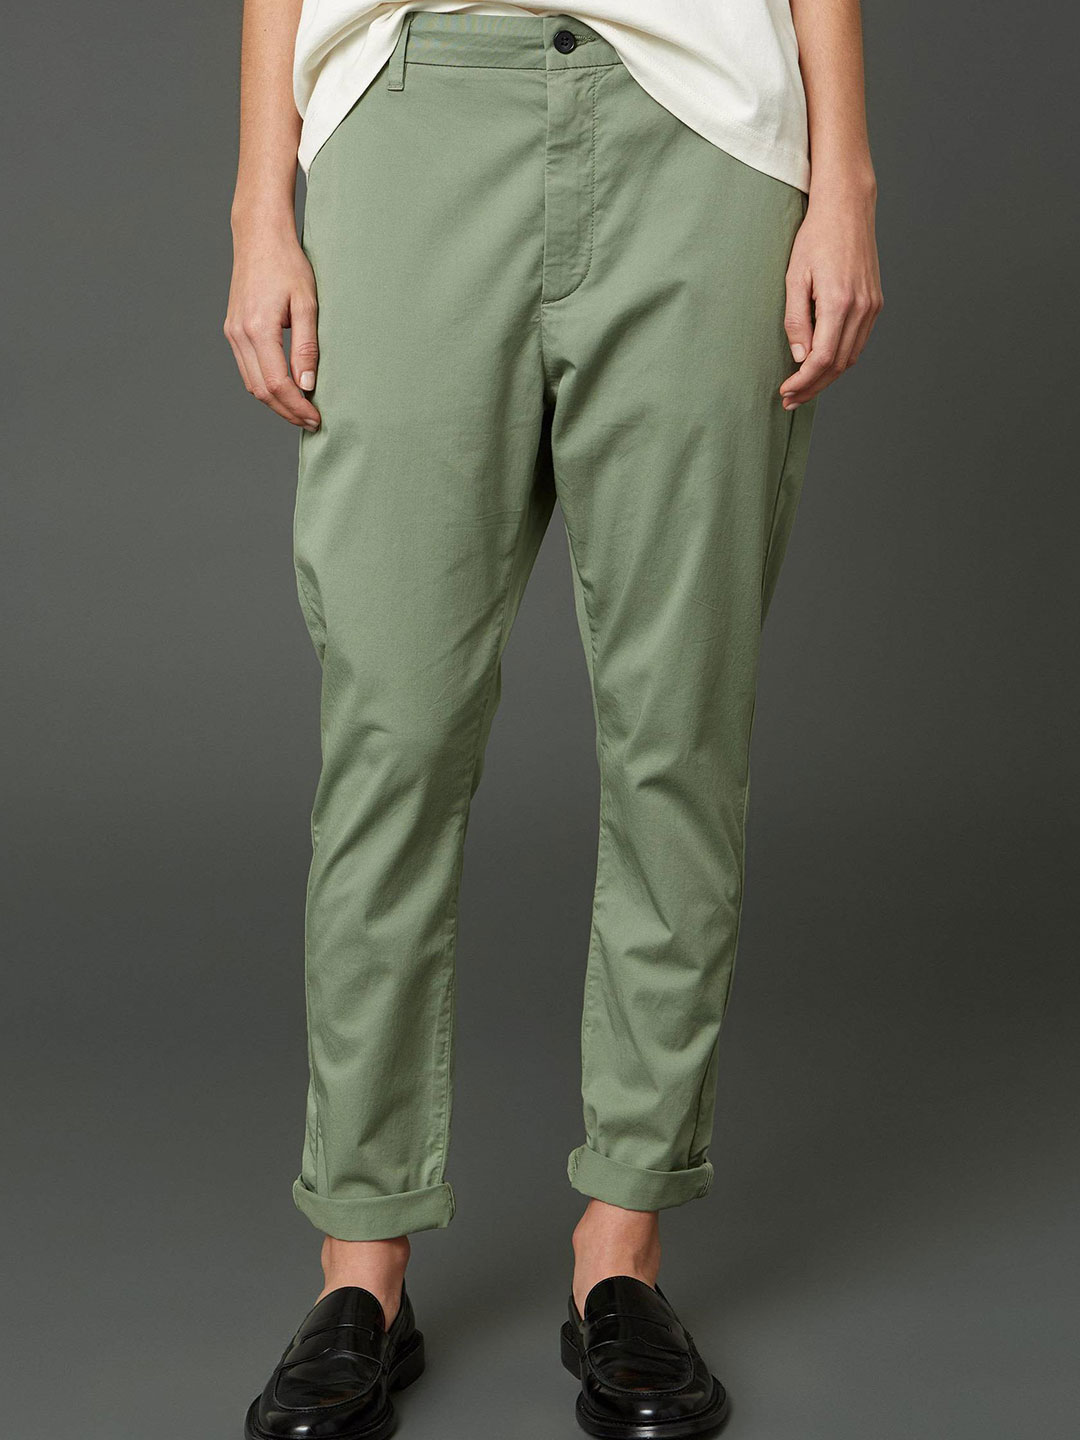 A1056-News-Edit-Trouser-Hope-Sthlm-Faded-Green-Front